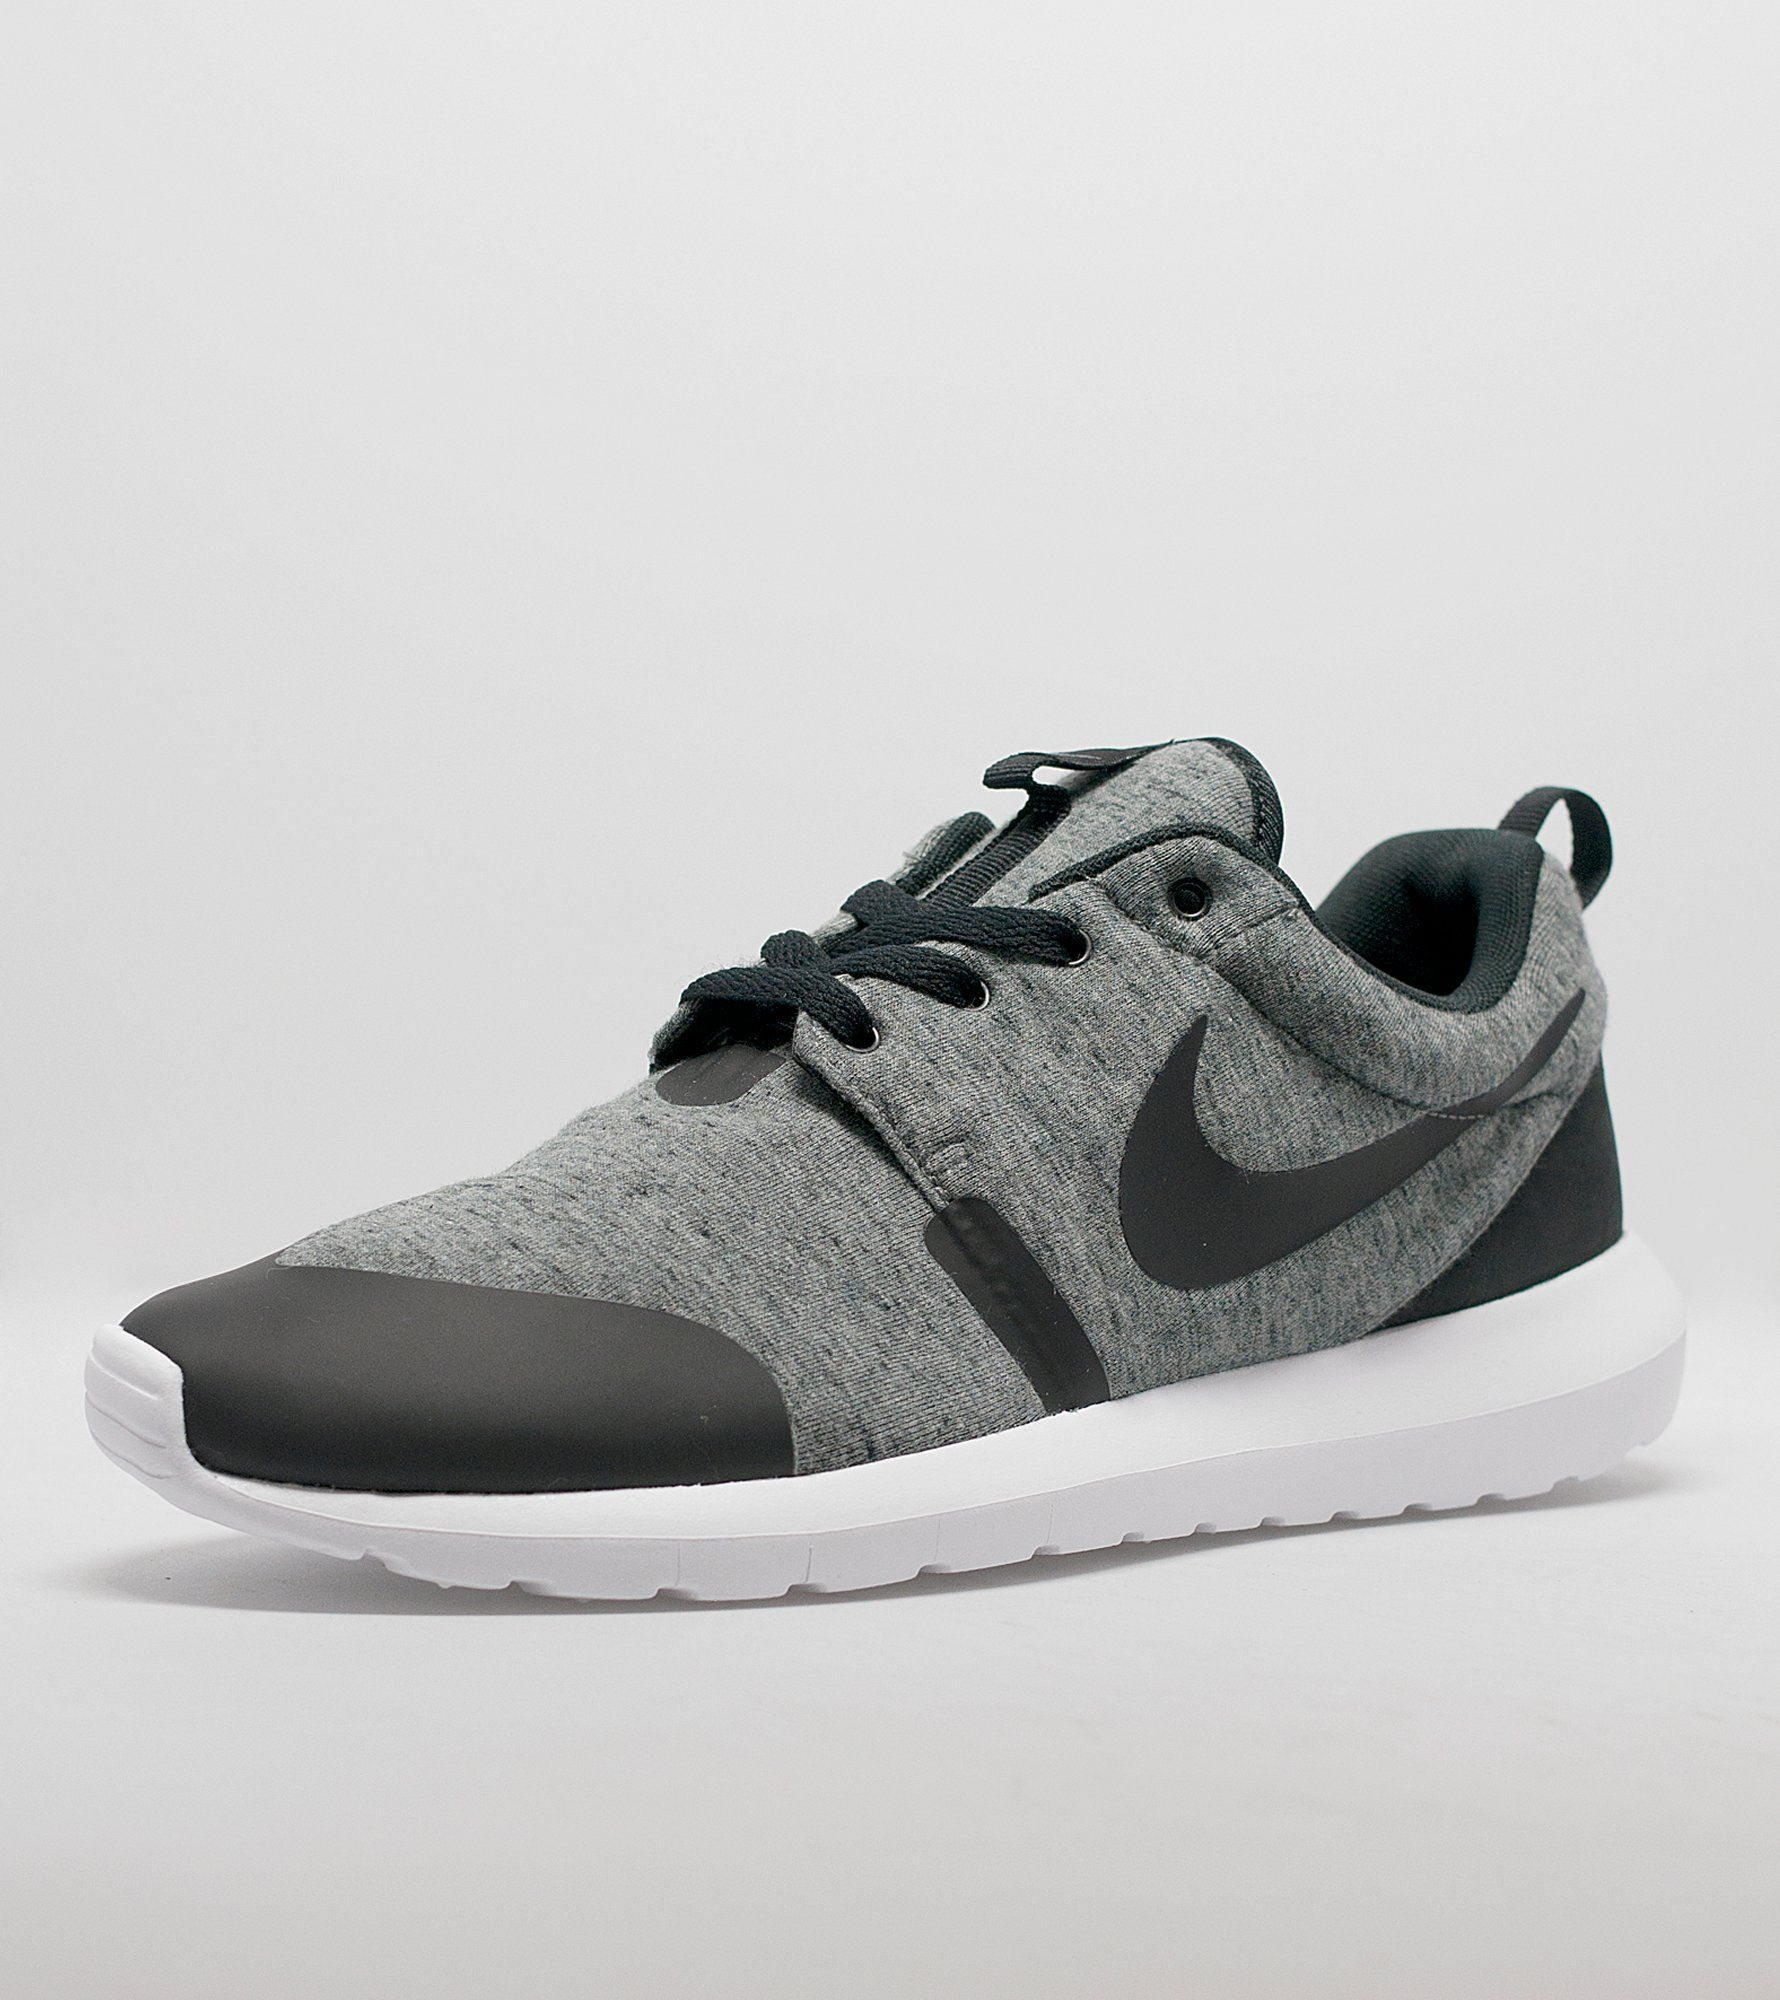 pzvgt Nike Roshe One Fleece | Size?